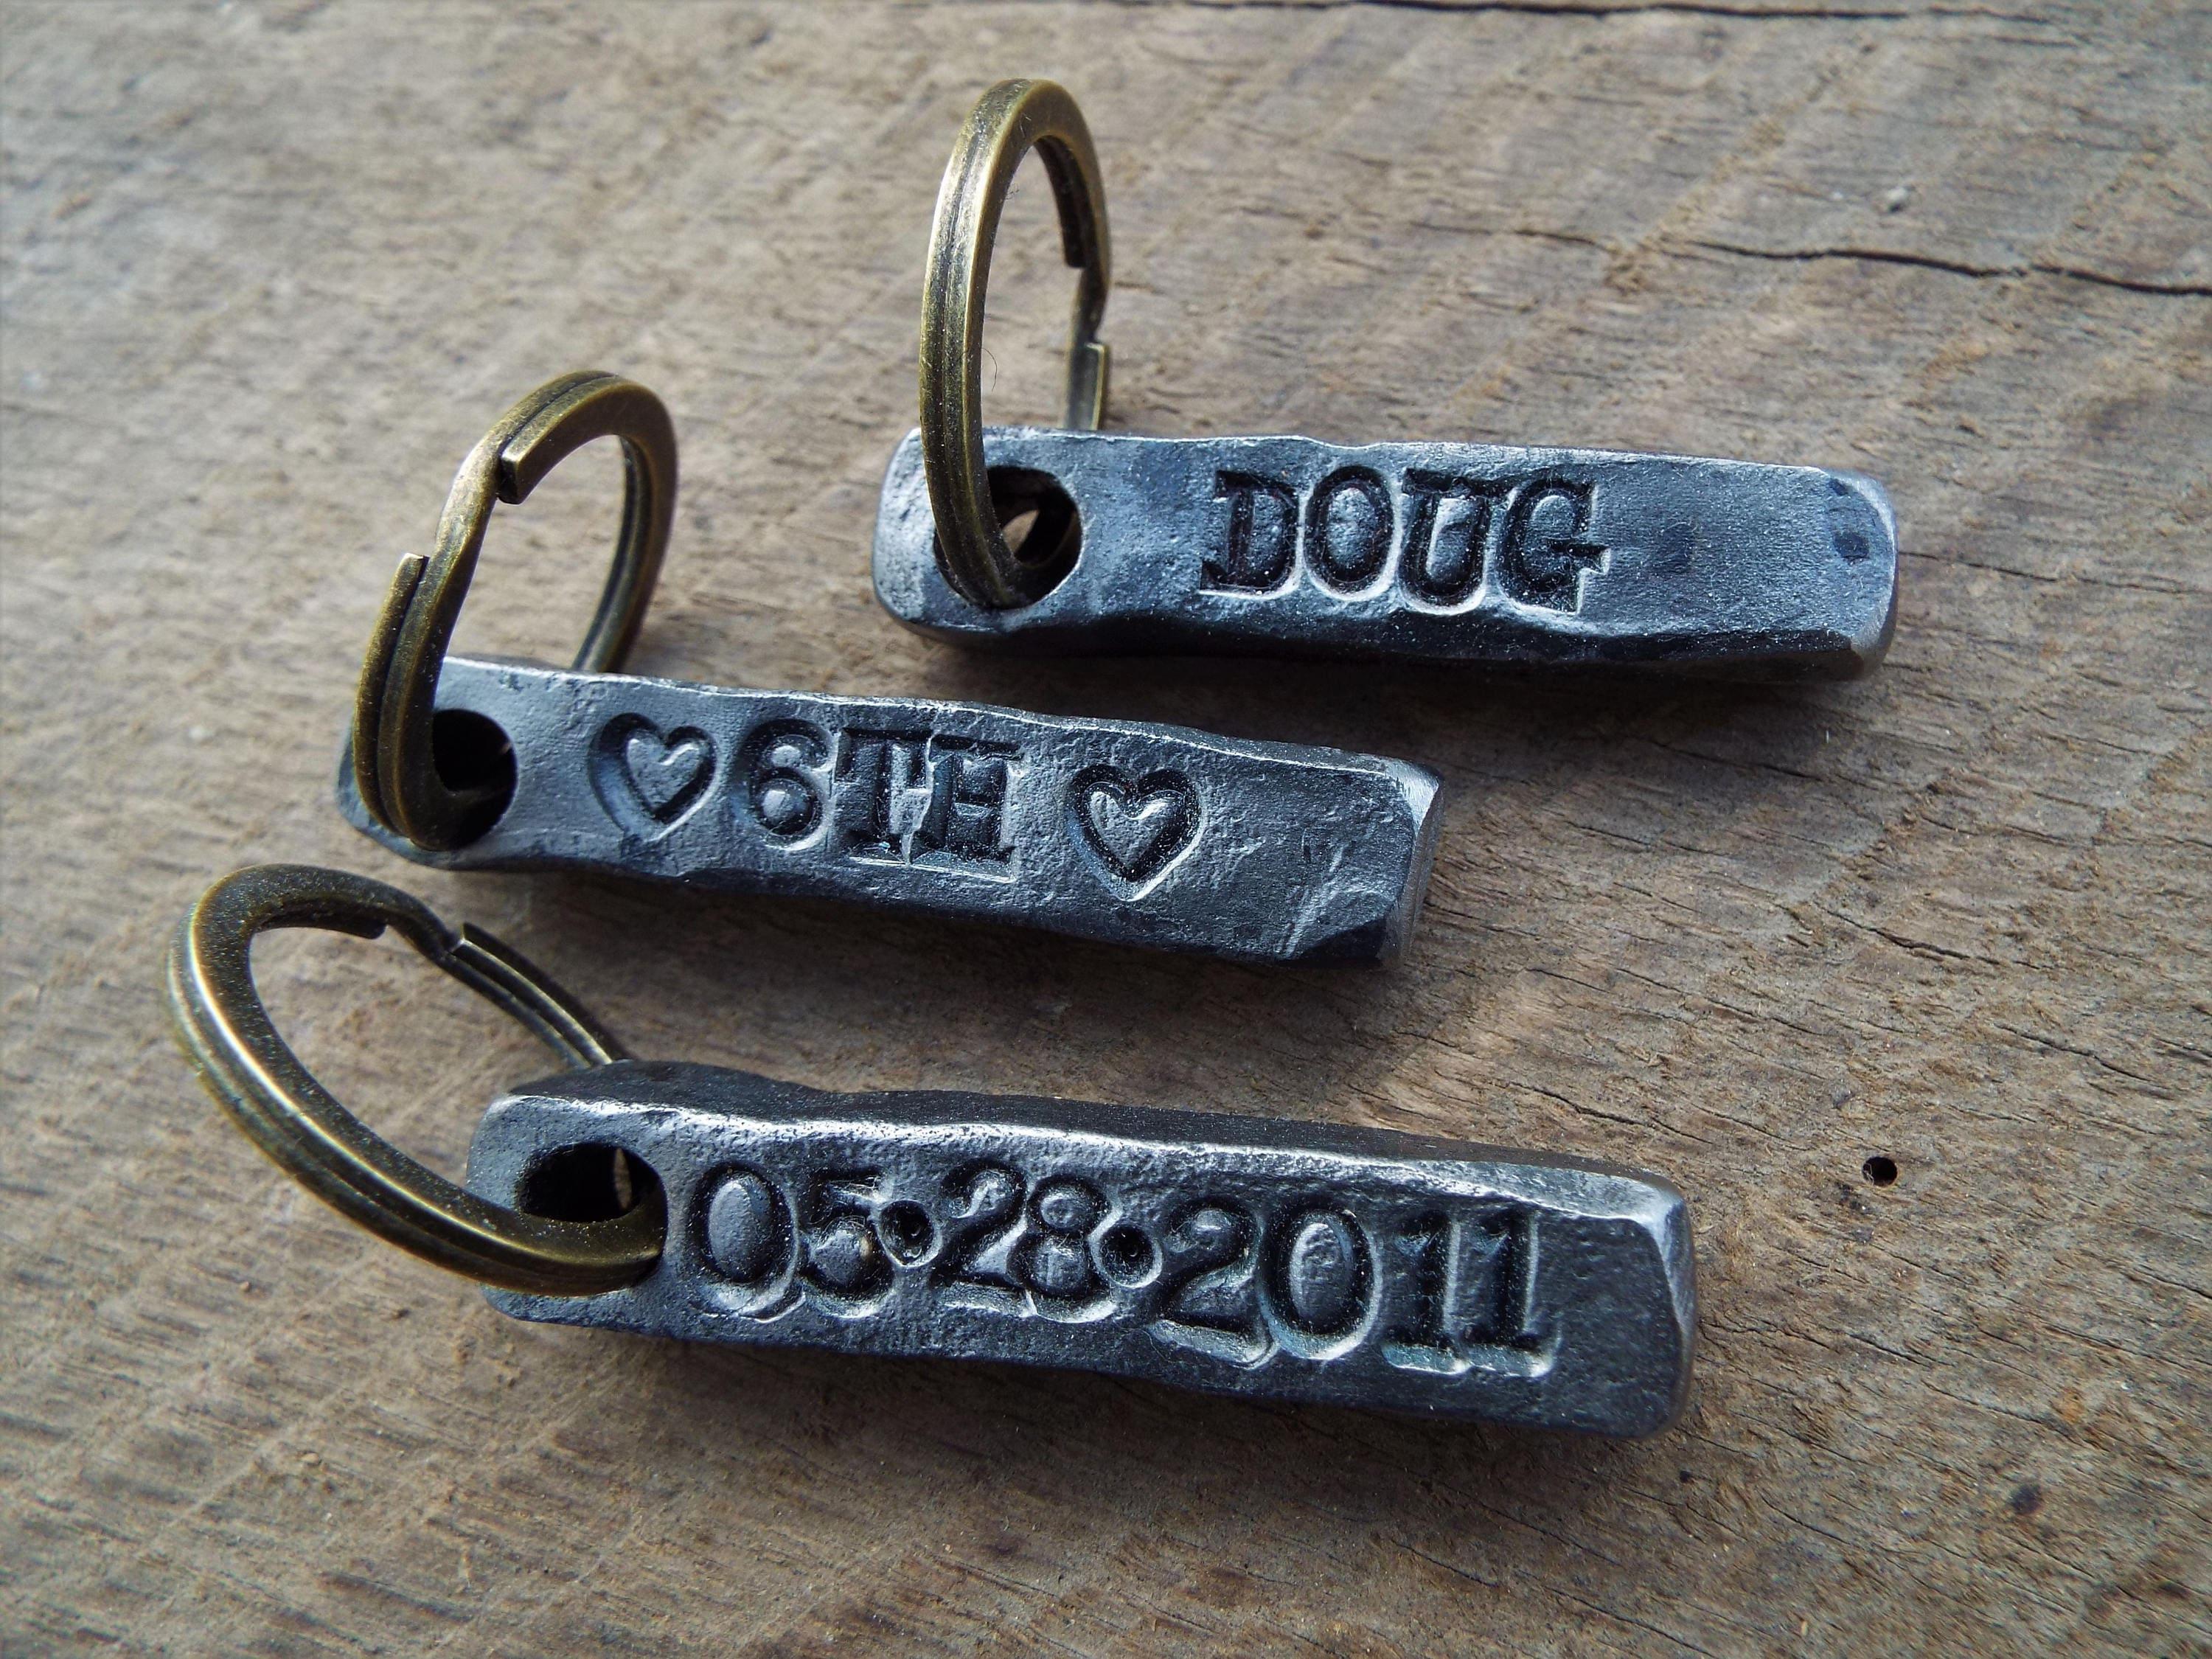 6th Year Wedding Anniversary Gifts For Him: Custom Key Chain. Iron Anniversary Gift 6th Anniversary